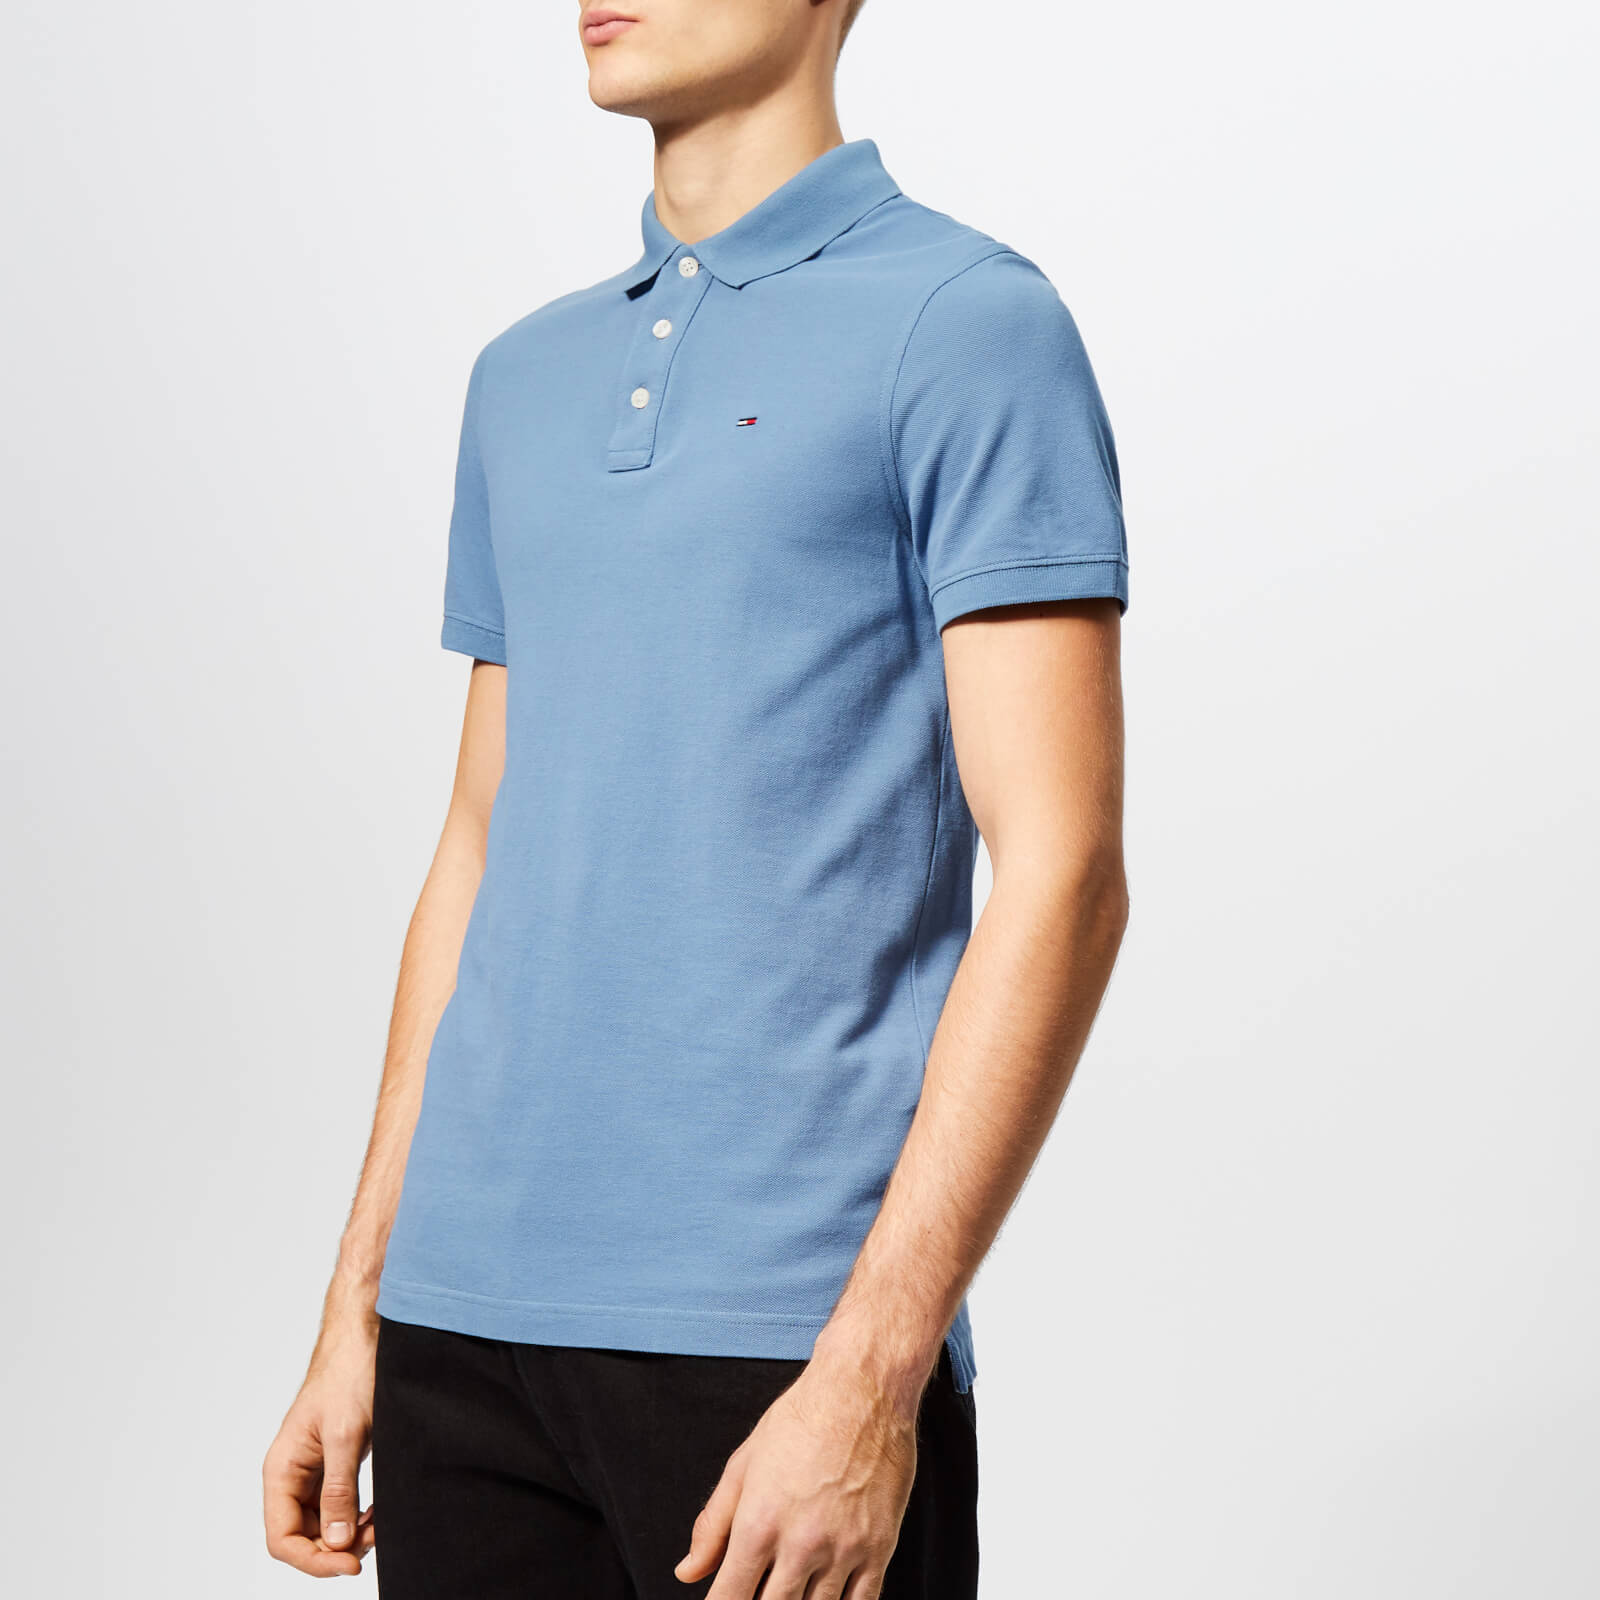 1464bb717 Tommy Jeans Men s Essential Polo Shirt - Coronet Blue Clothing ...